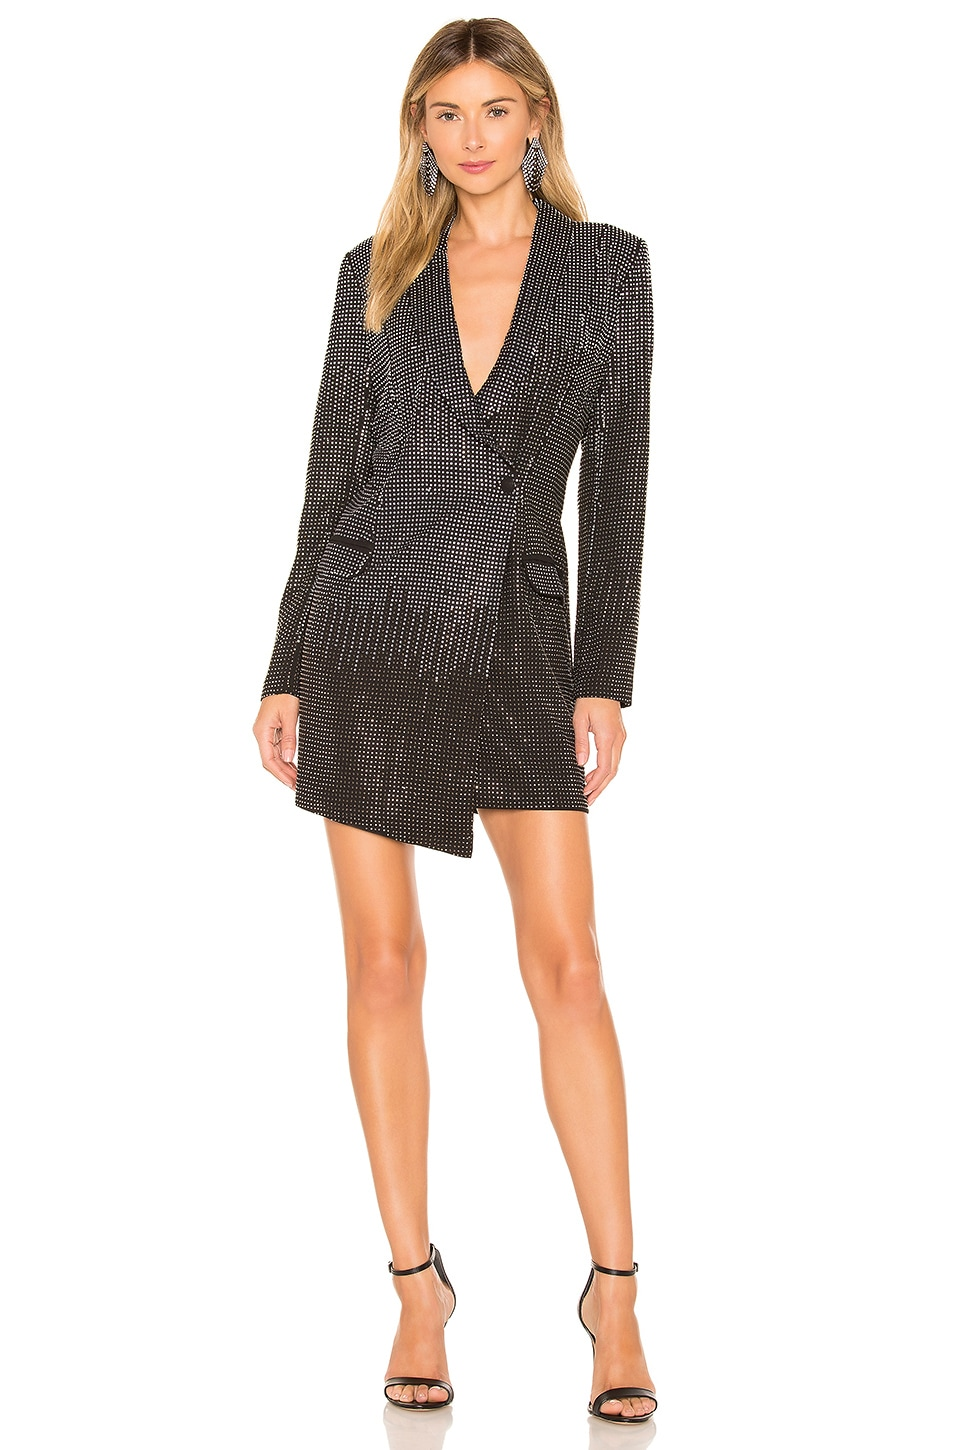 X by NBD Baddie Tux Dress in Black Ombre